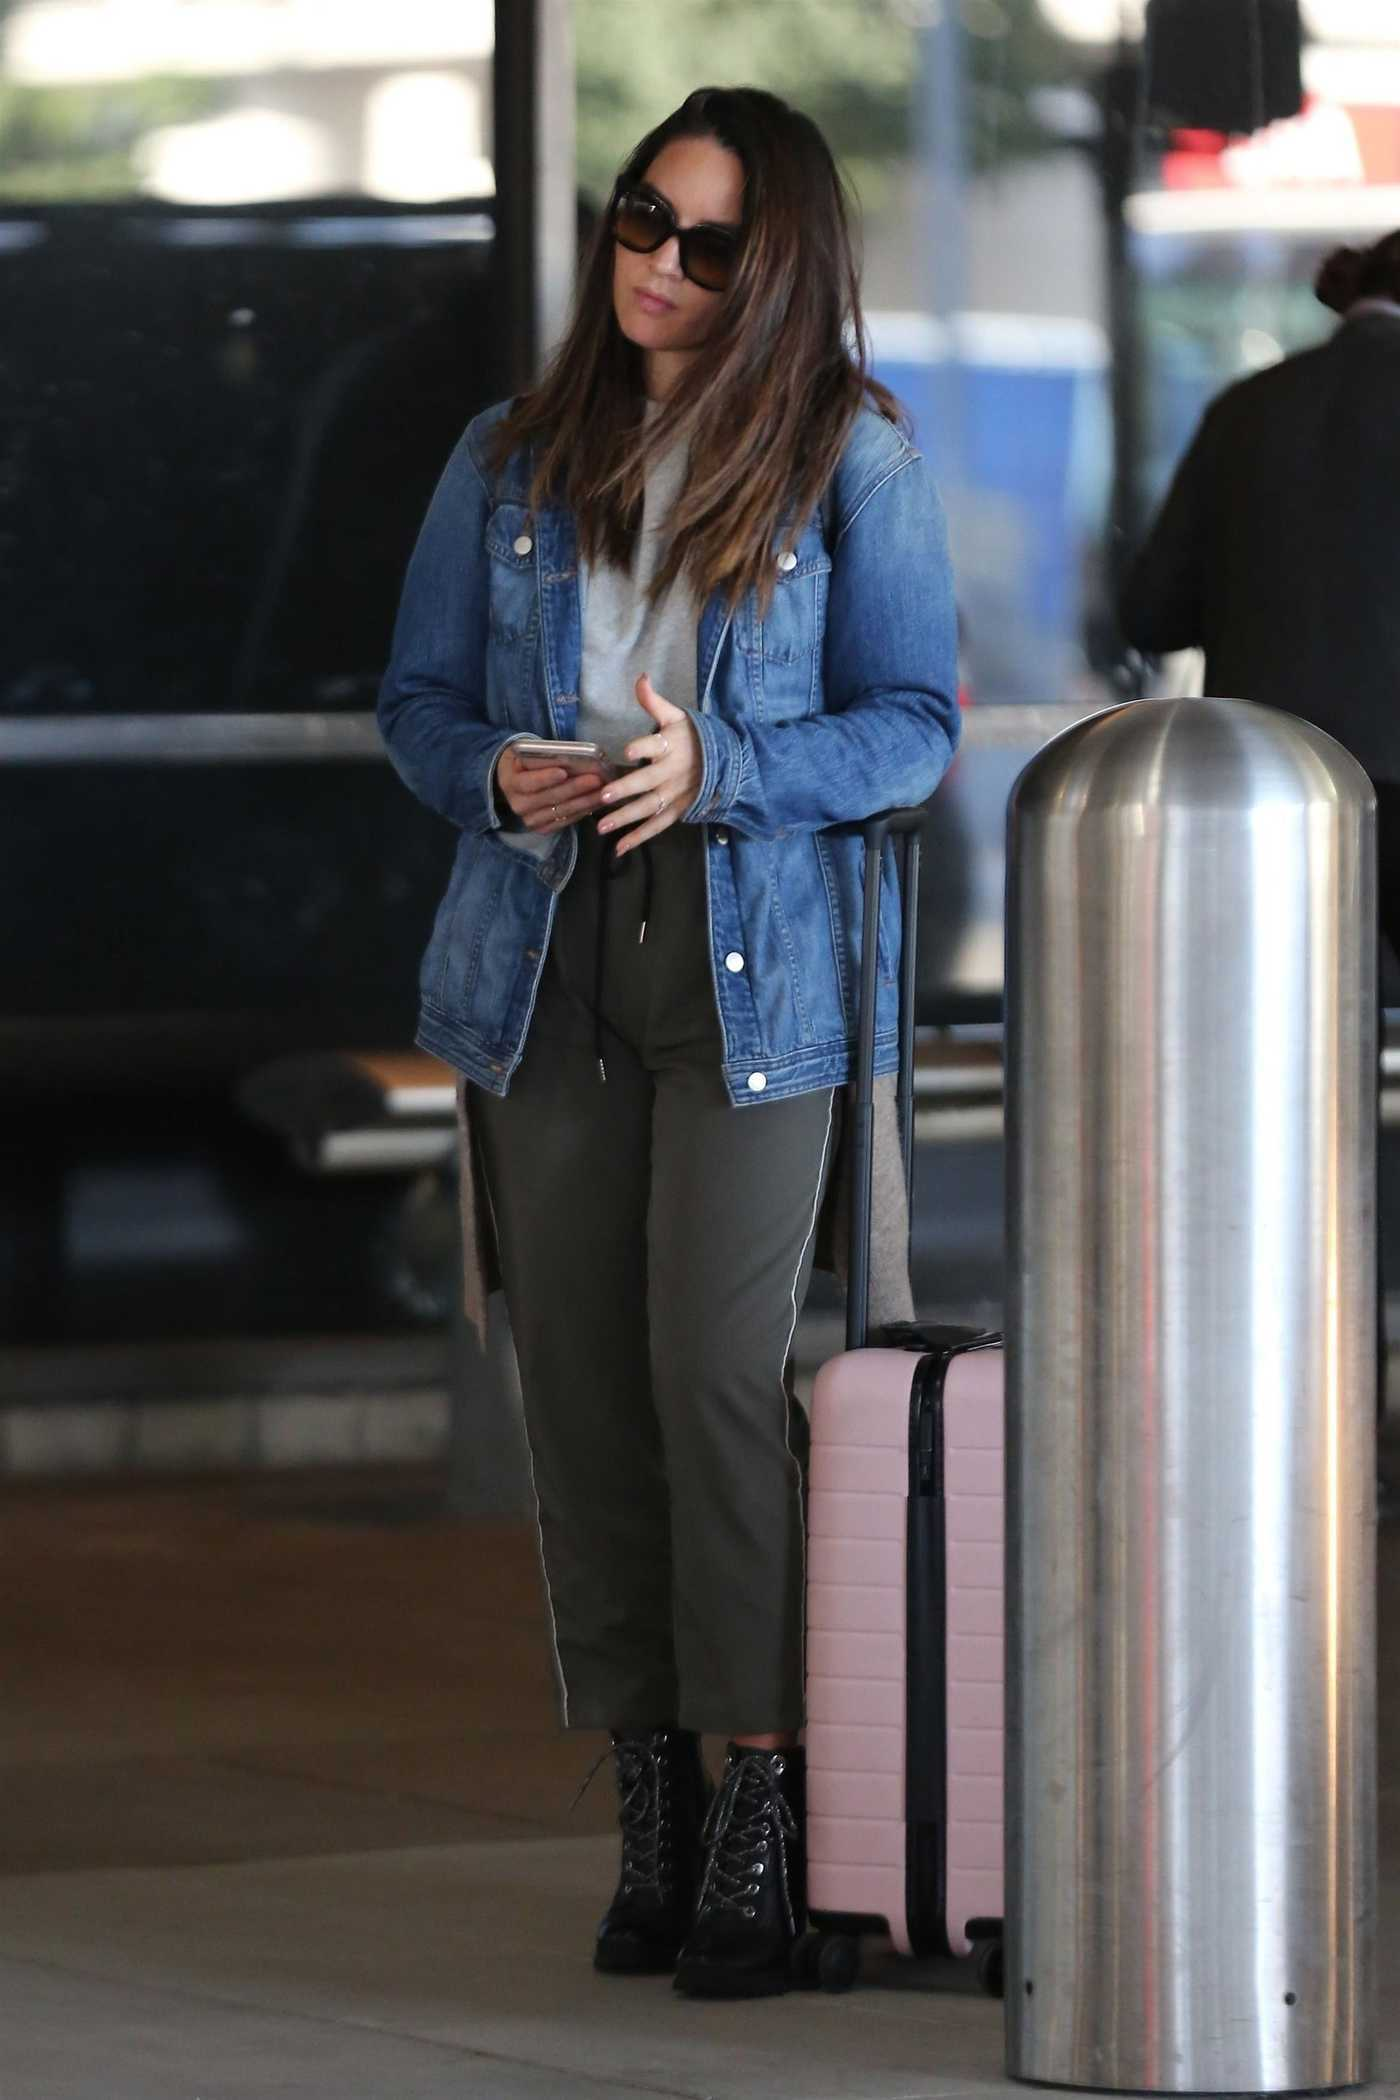 Olivia Munn in a Blue Denim Jacket Arrives at LAX Airport in Los Angeles 10/09/2018